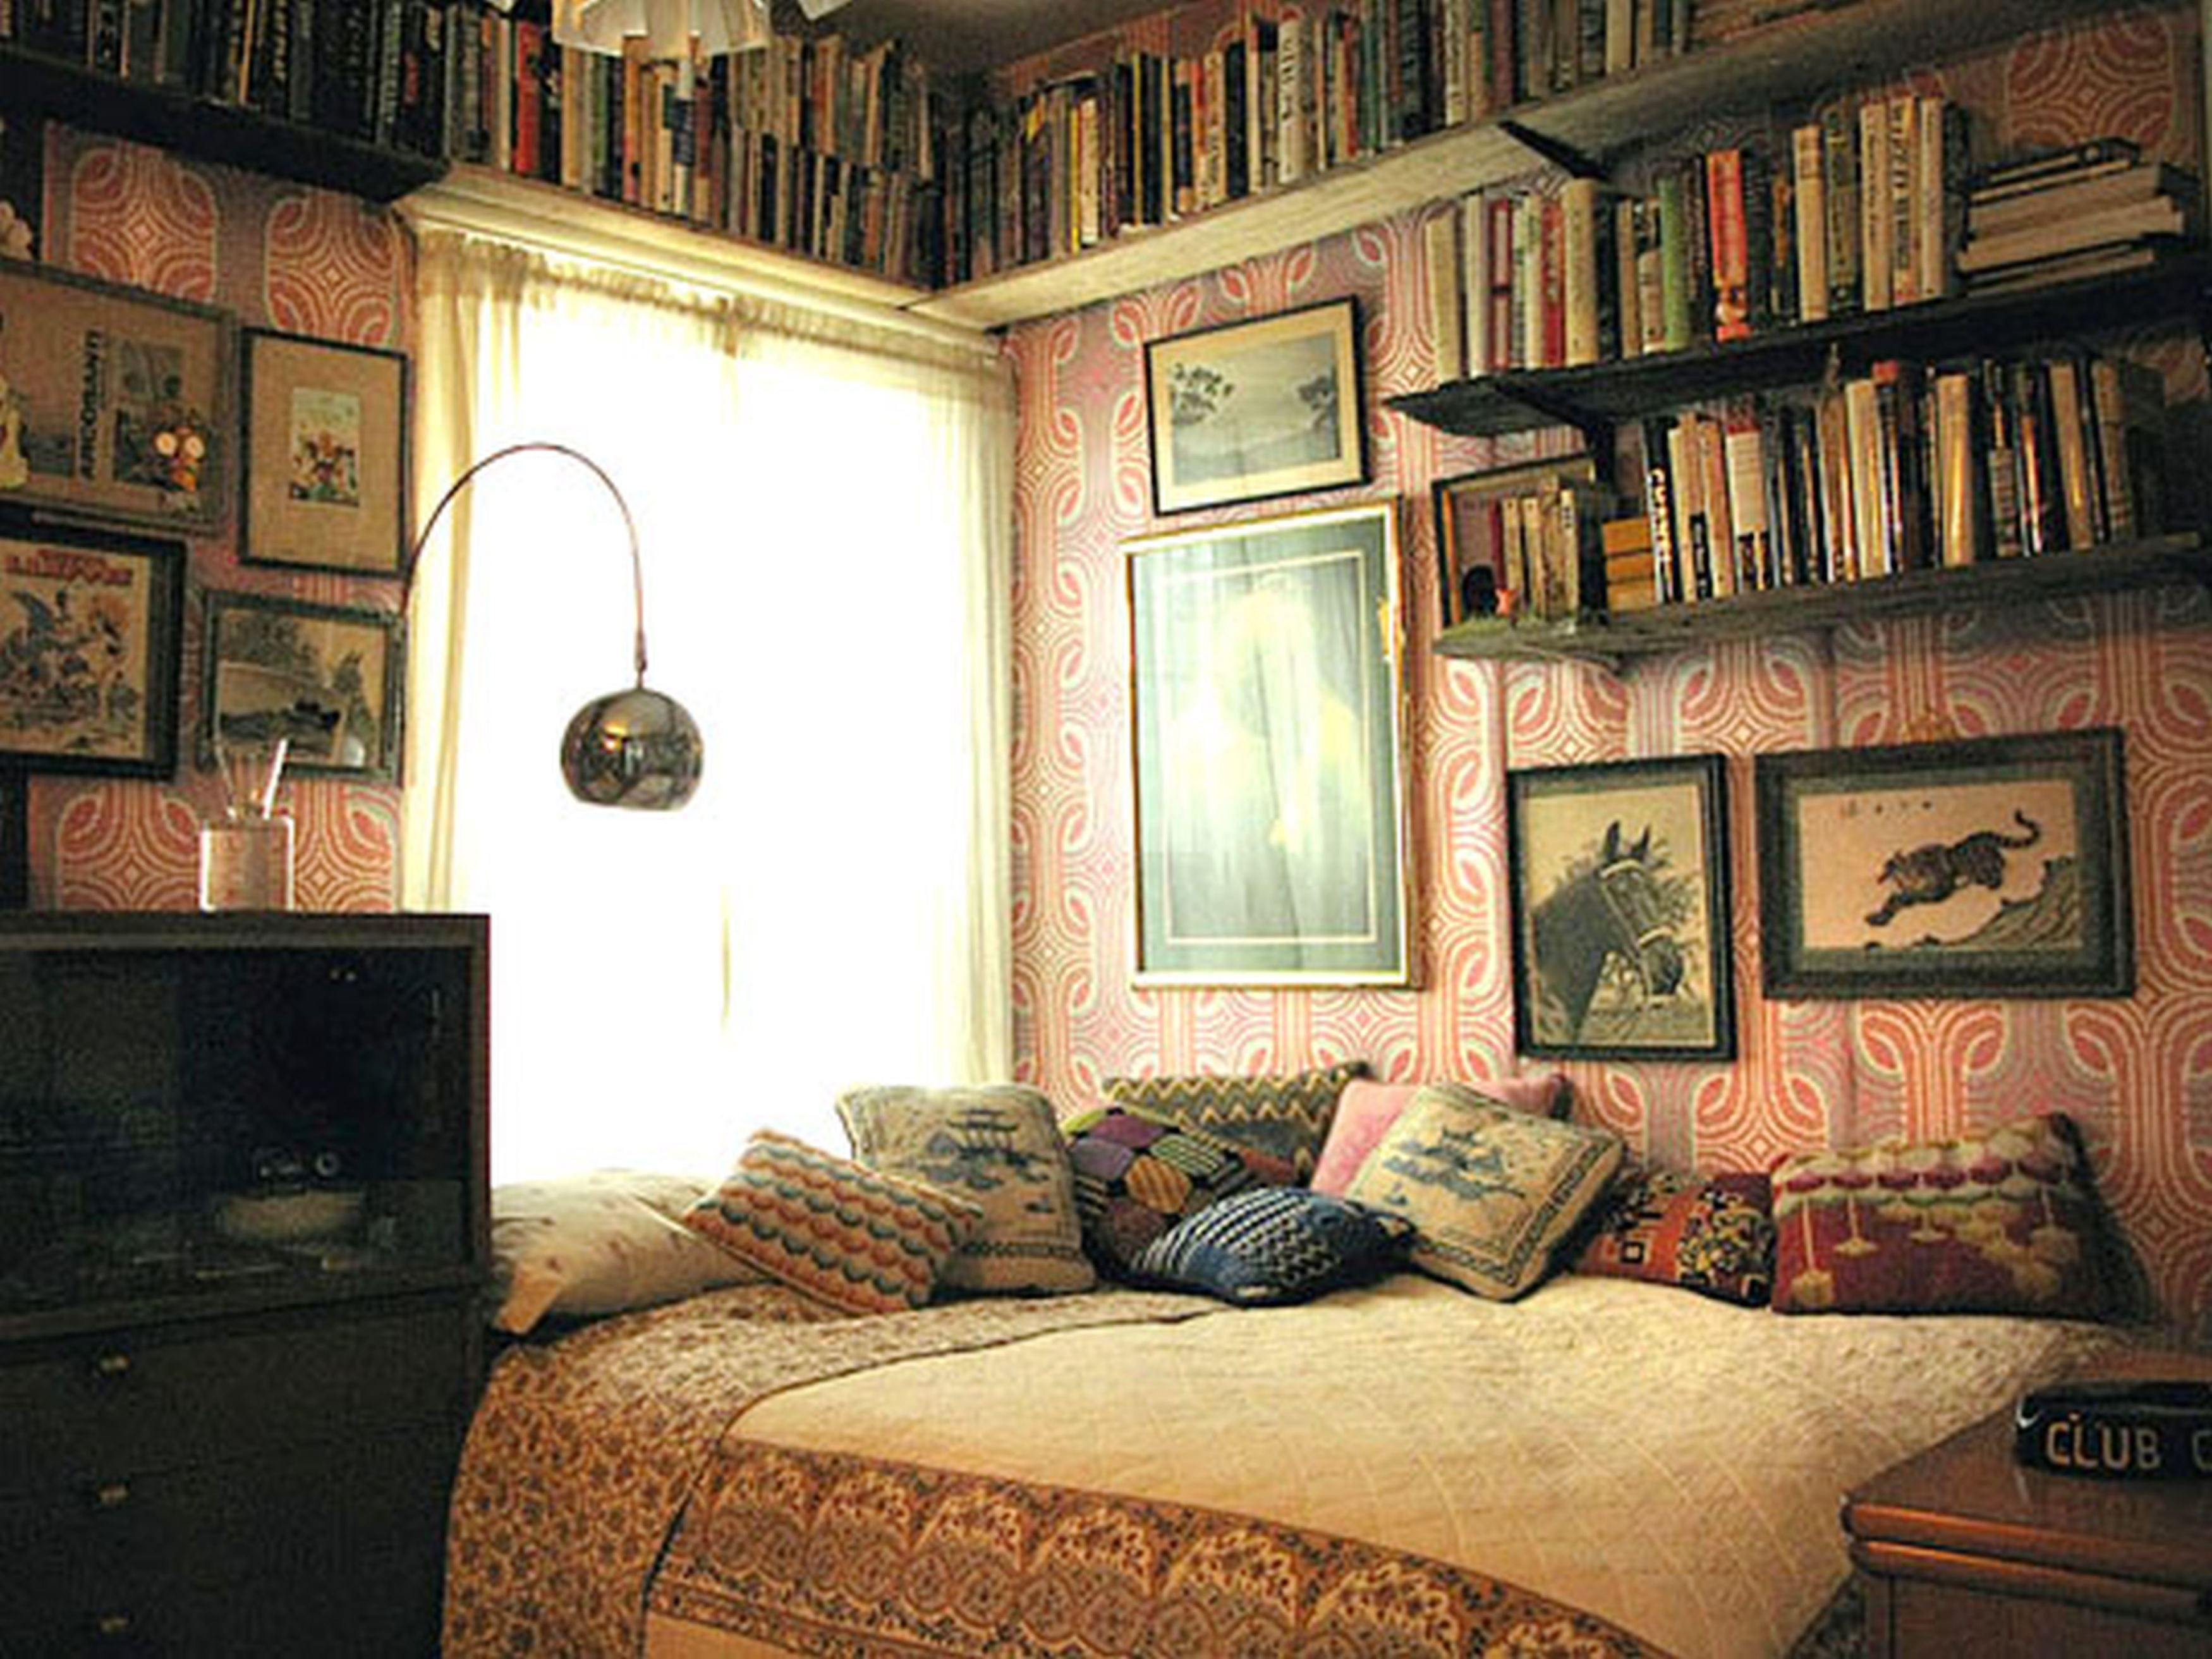 Tags for this image include room light bedroom tumblr and grunge - Besf Of Ideas Decorating Interior Home Design With Vintage Room Ideas Bookshelving On Pink Wall Paint Decoration Arc Floor Lamp Glass Window Black Color